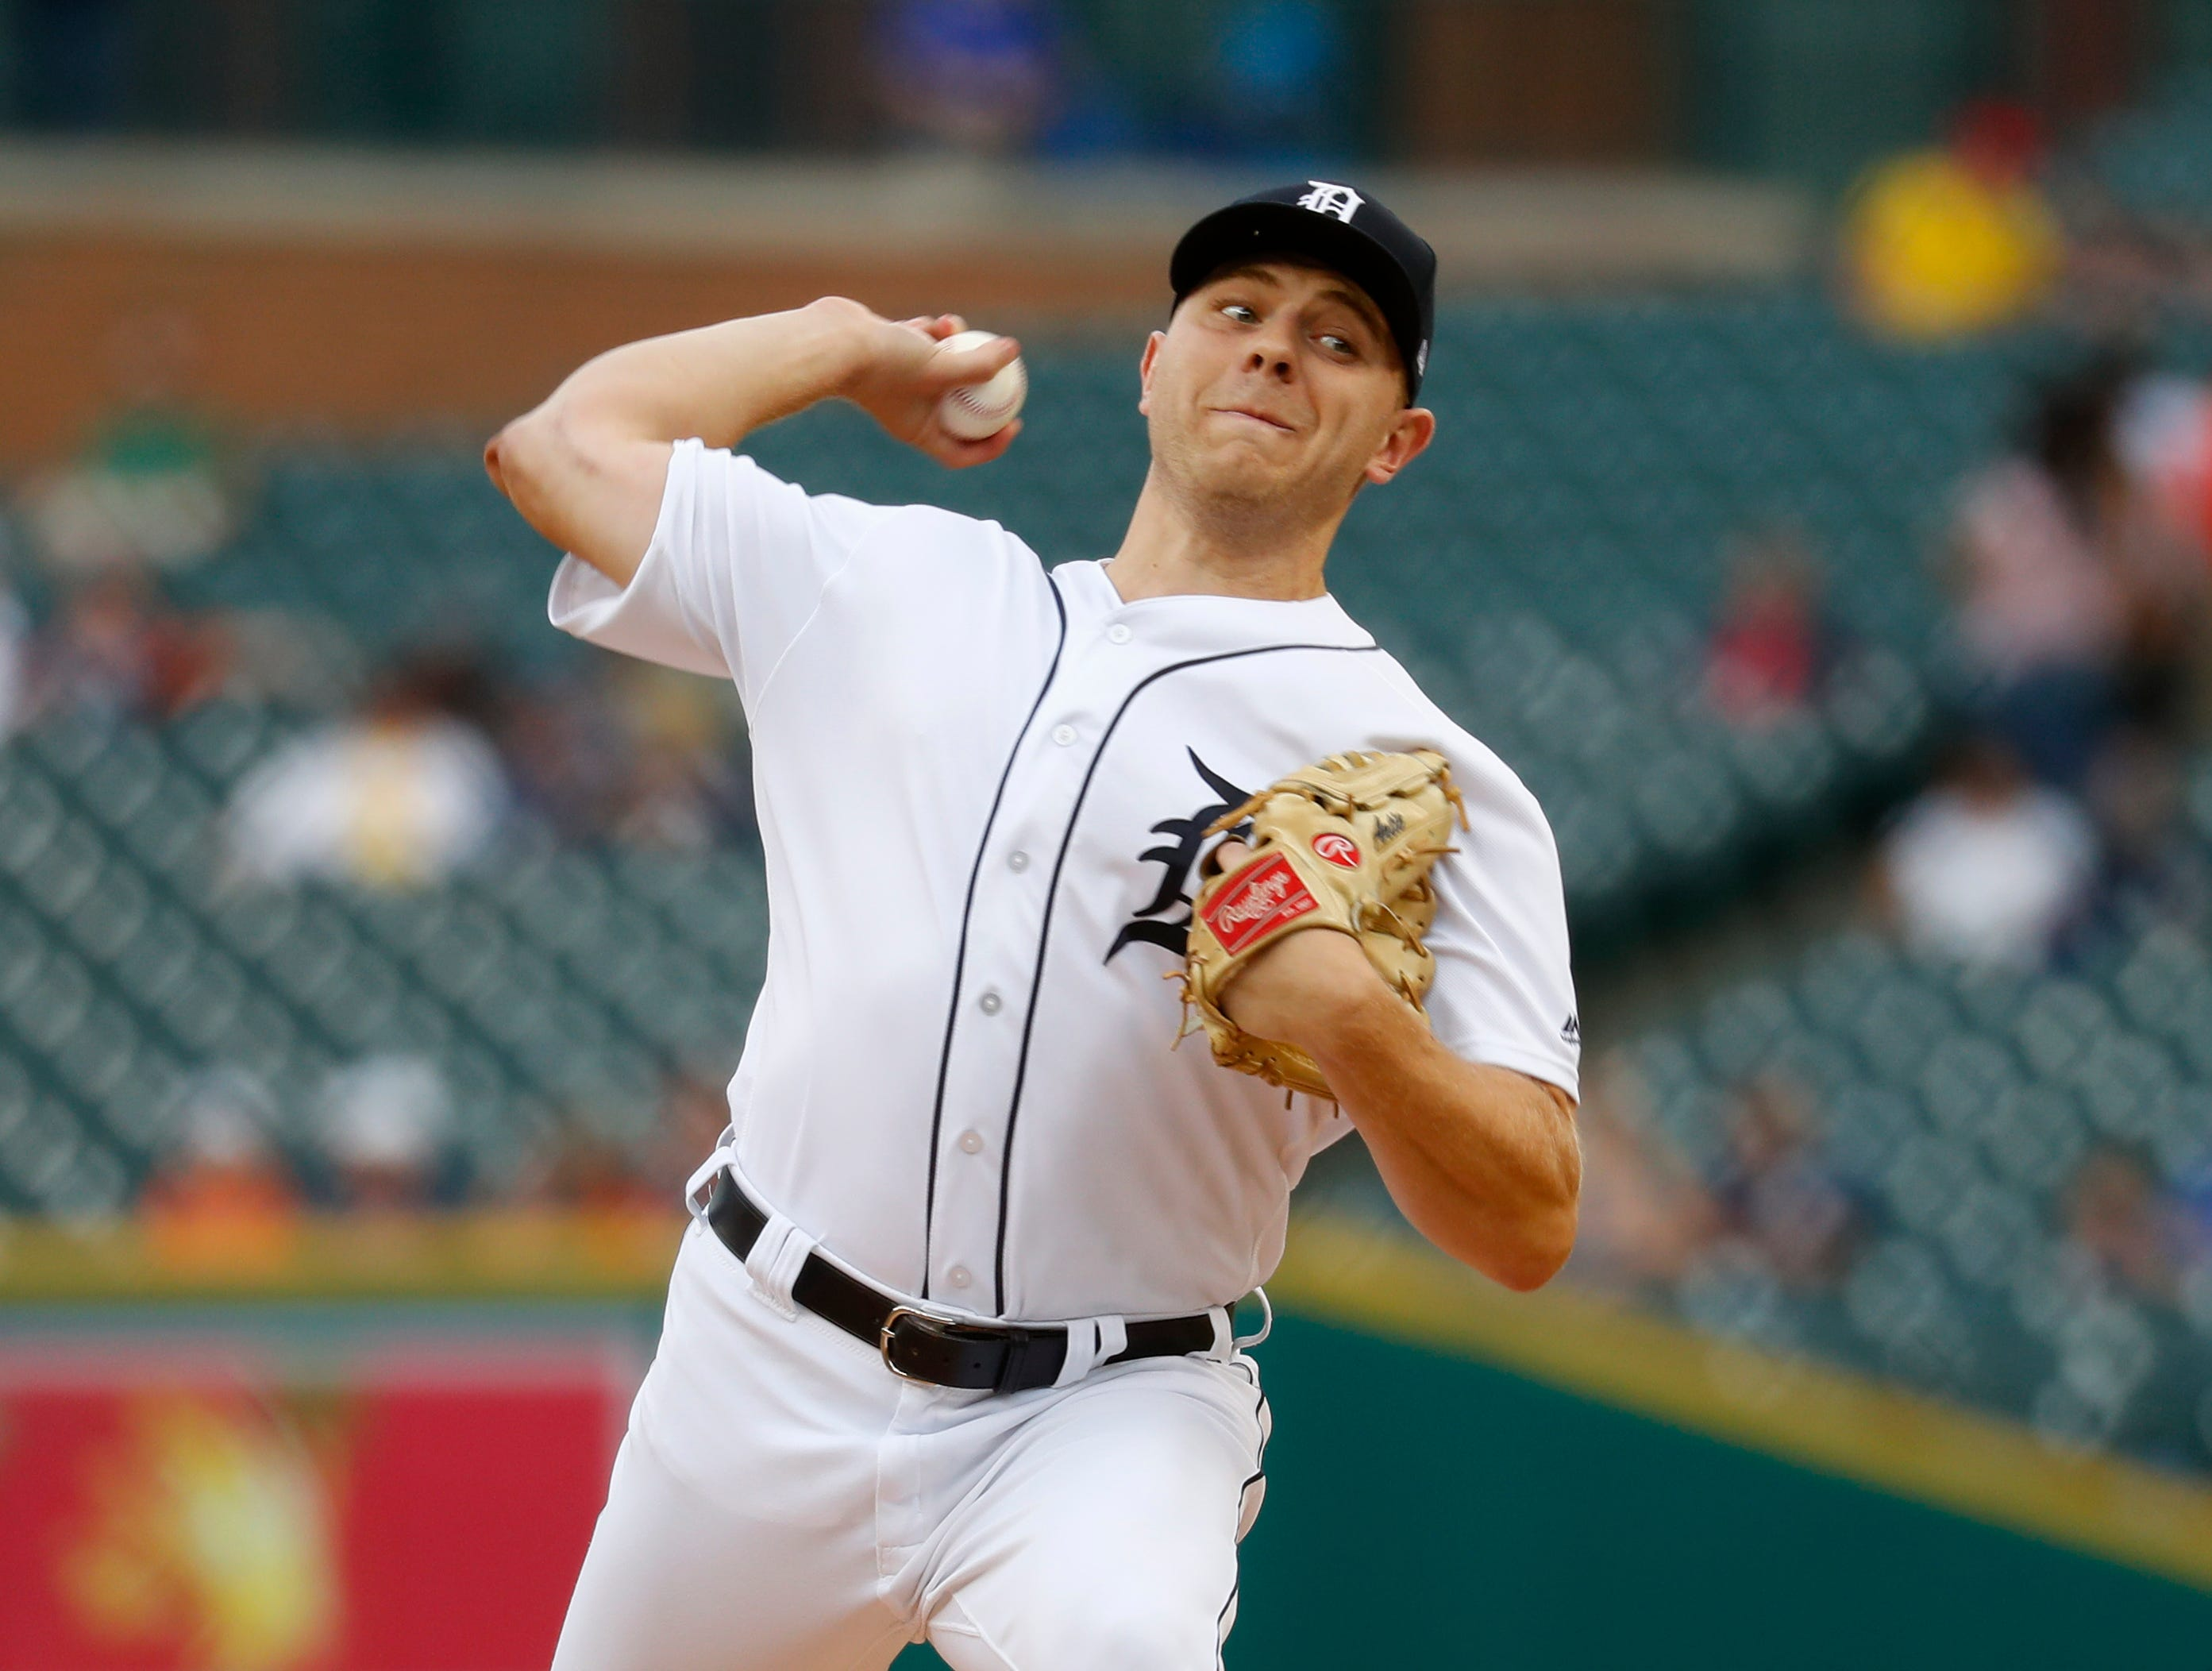 Detroit Tigers pitcher Artie Lewicki throws against the Chicago White Sox in the first inning in Detroit, Monday, Aug. 13, 2018.